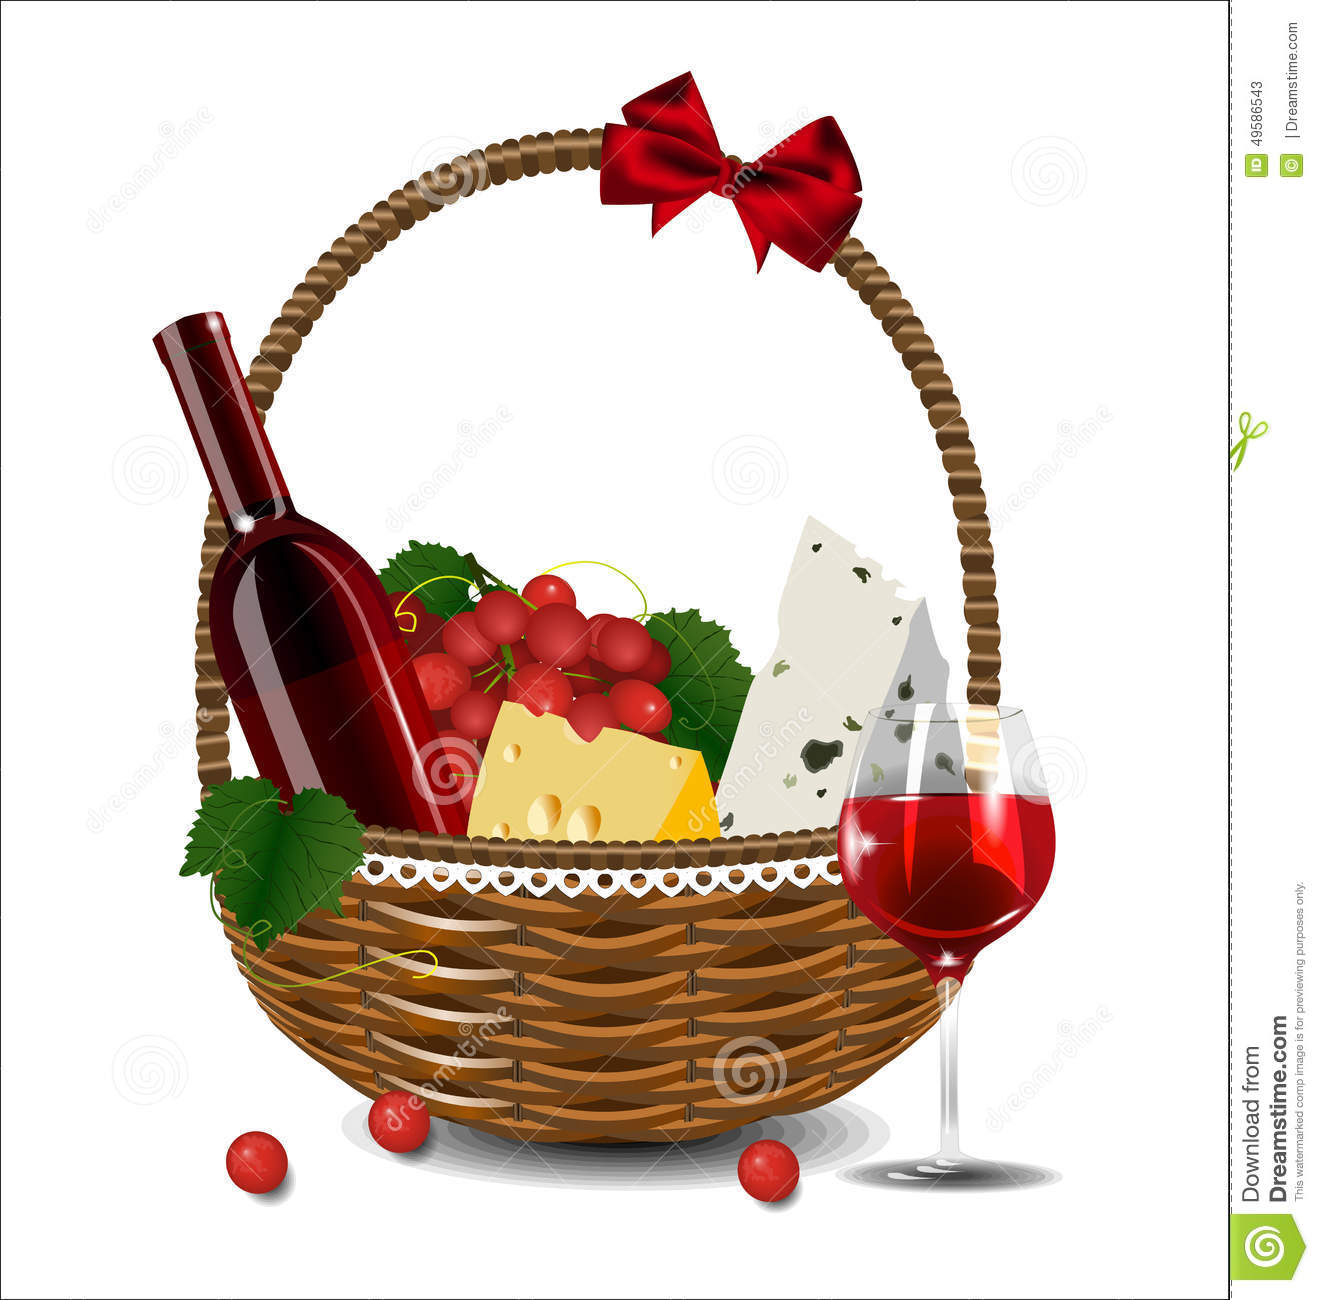 A Bottle Of Wine Grapes And Cheese In A Wicker Basket